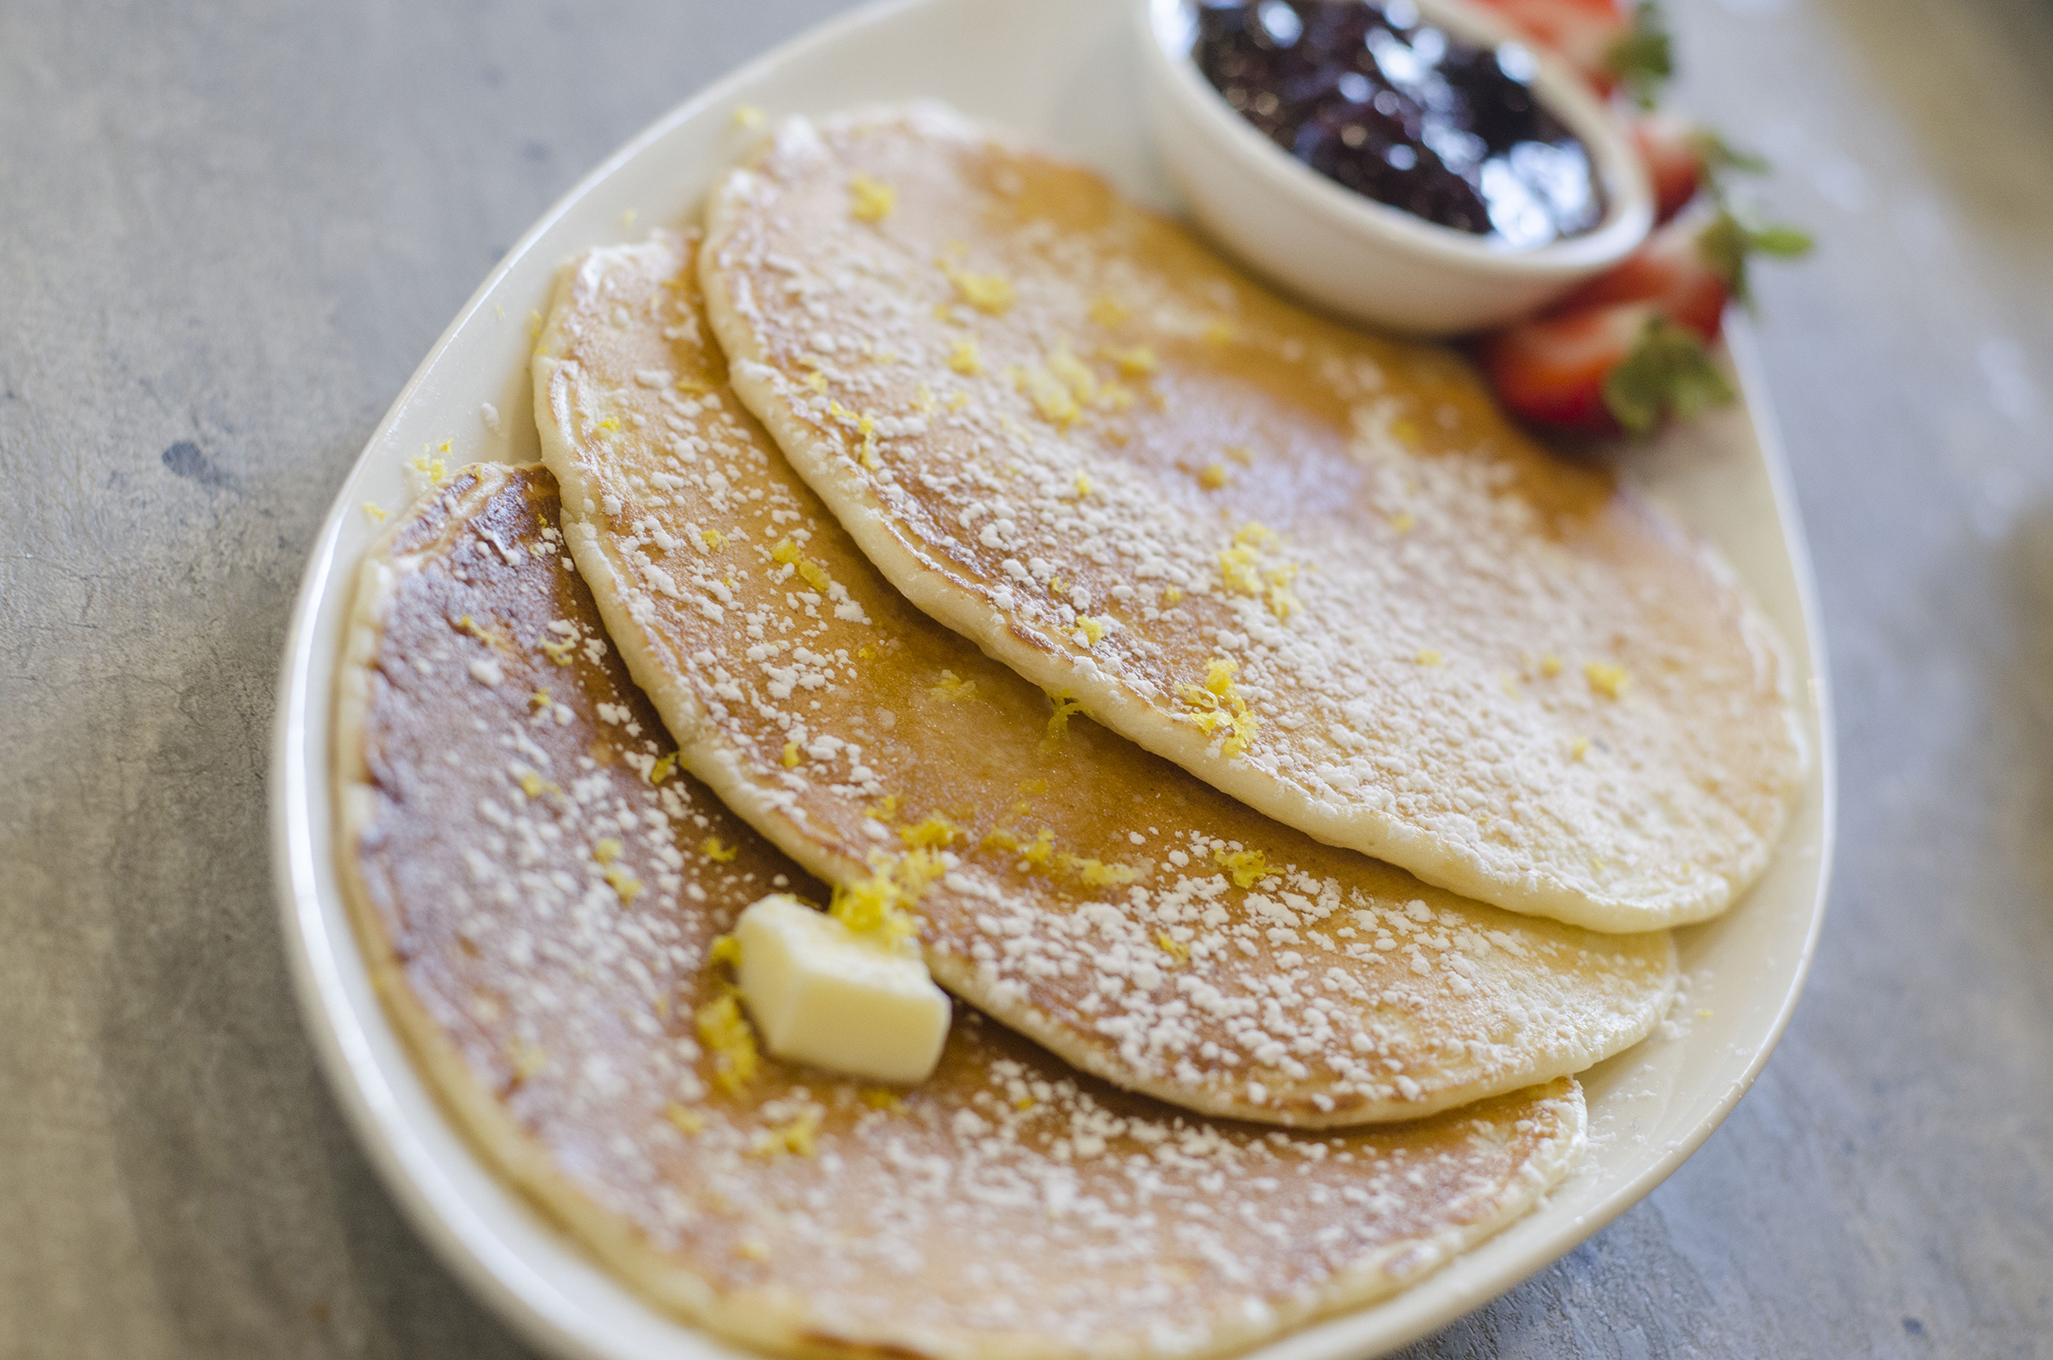 Lemon Ricotta Pancakes from Paglione Estate Winery in Essex, Ontario.